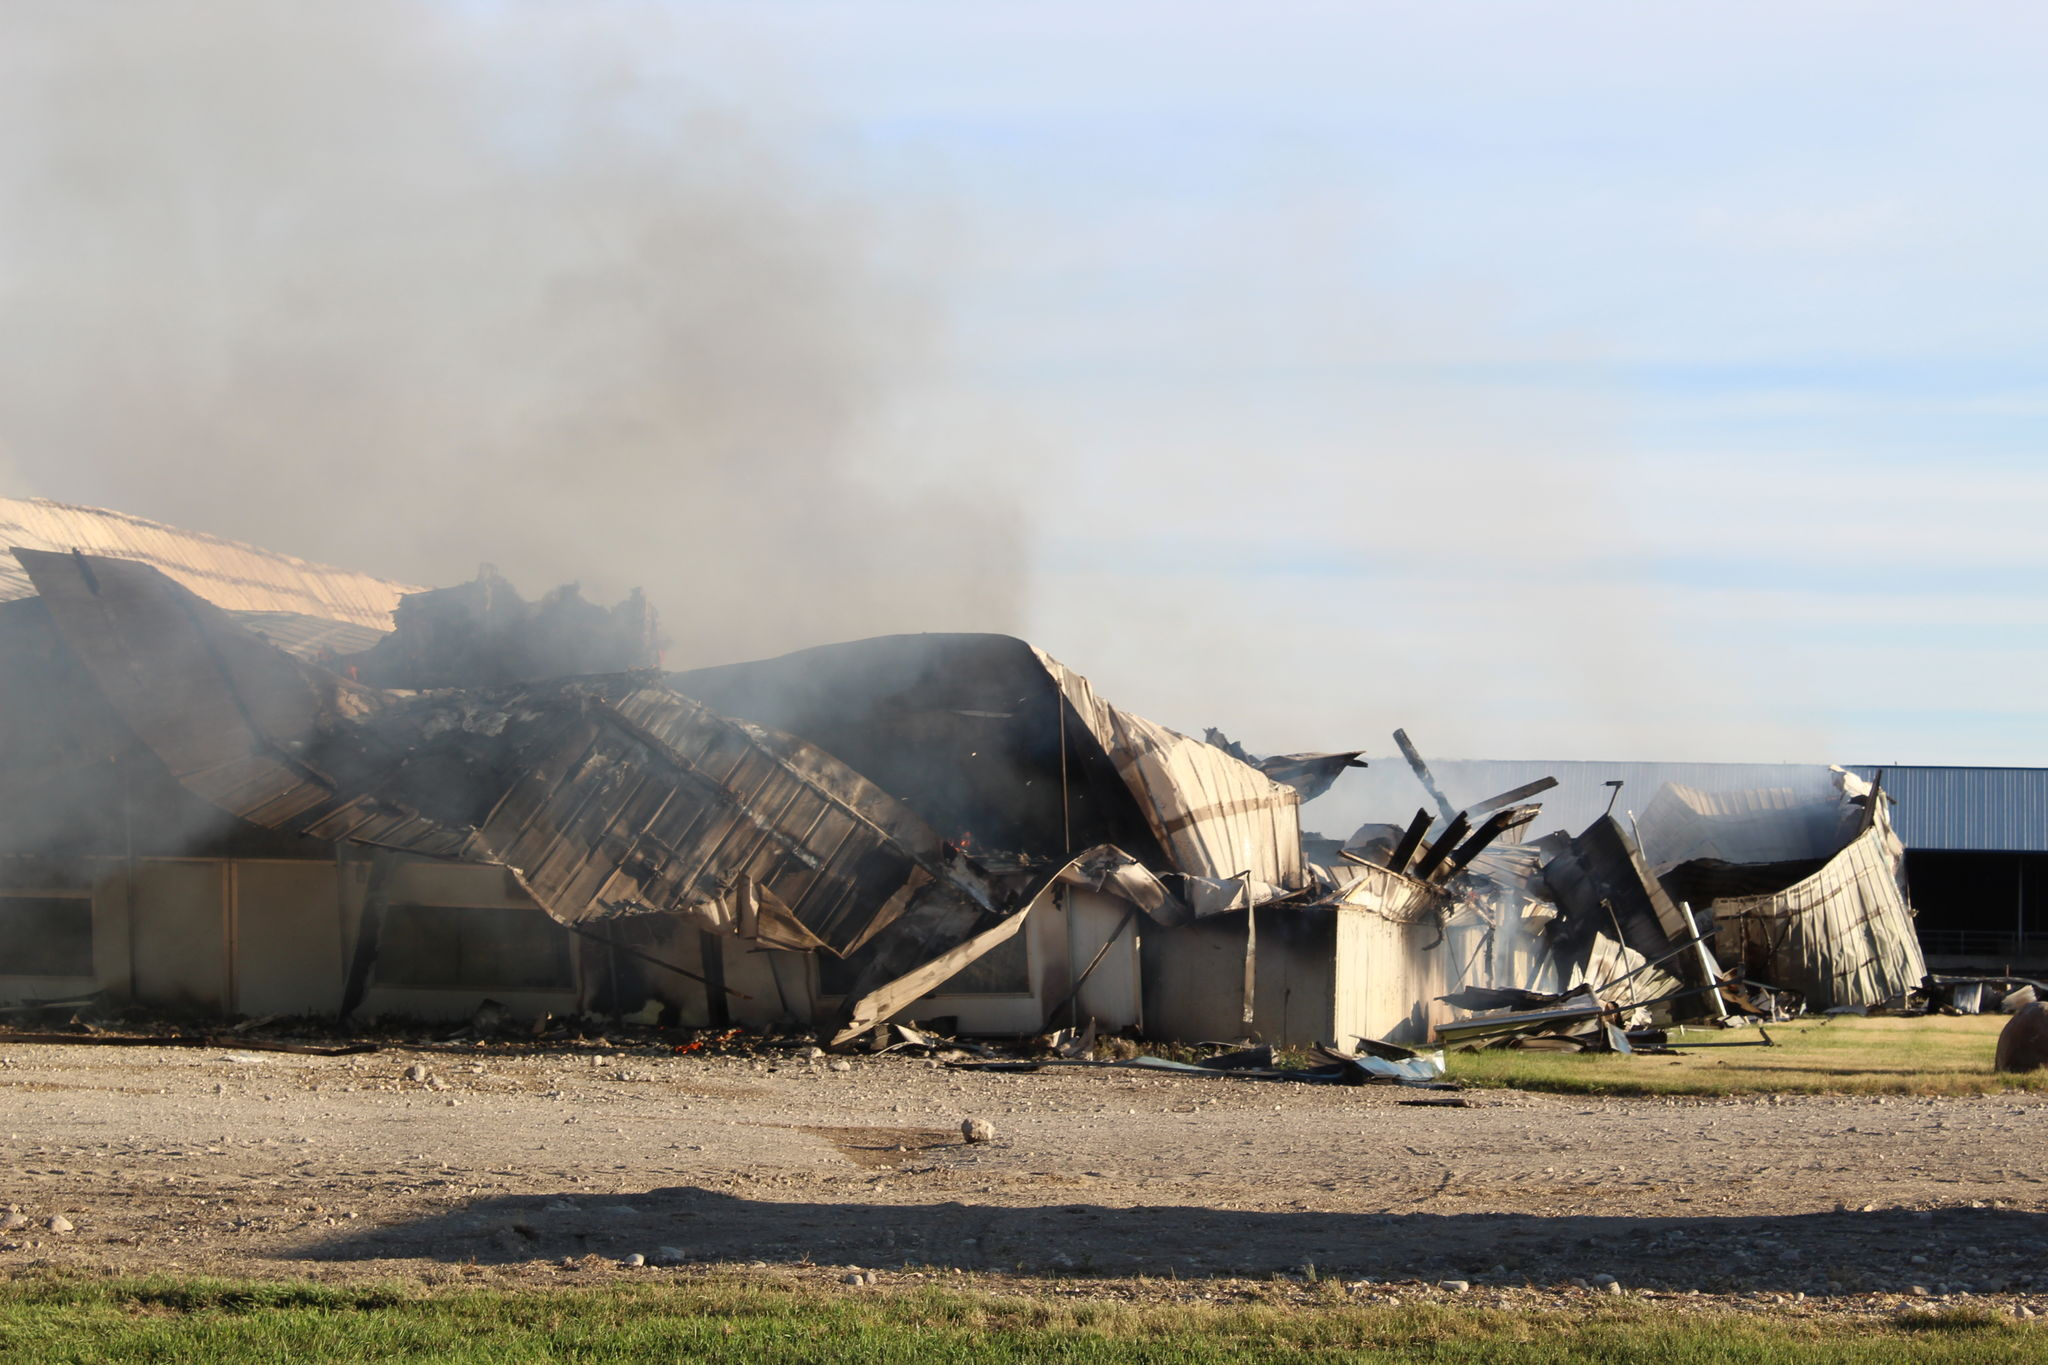 Hours later, fire crews were still working to extinguish the smoldering remains of the barn. A 911 call reported the blaze at Pennwood Dairy at 4:42 a.m. on Monday morning.